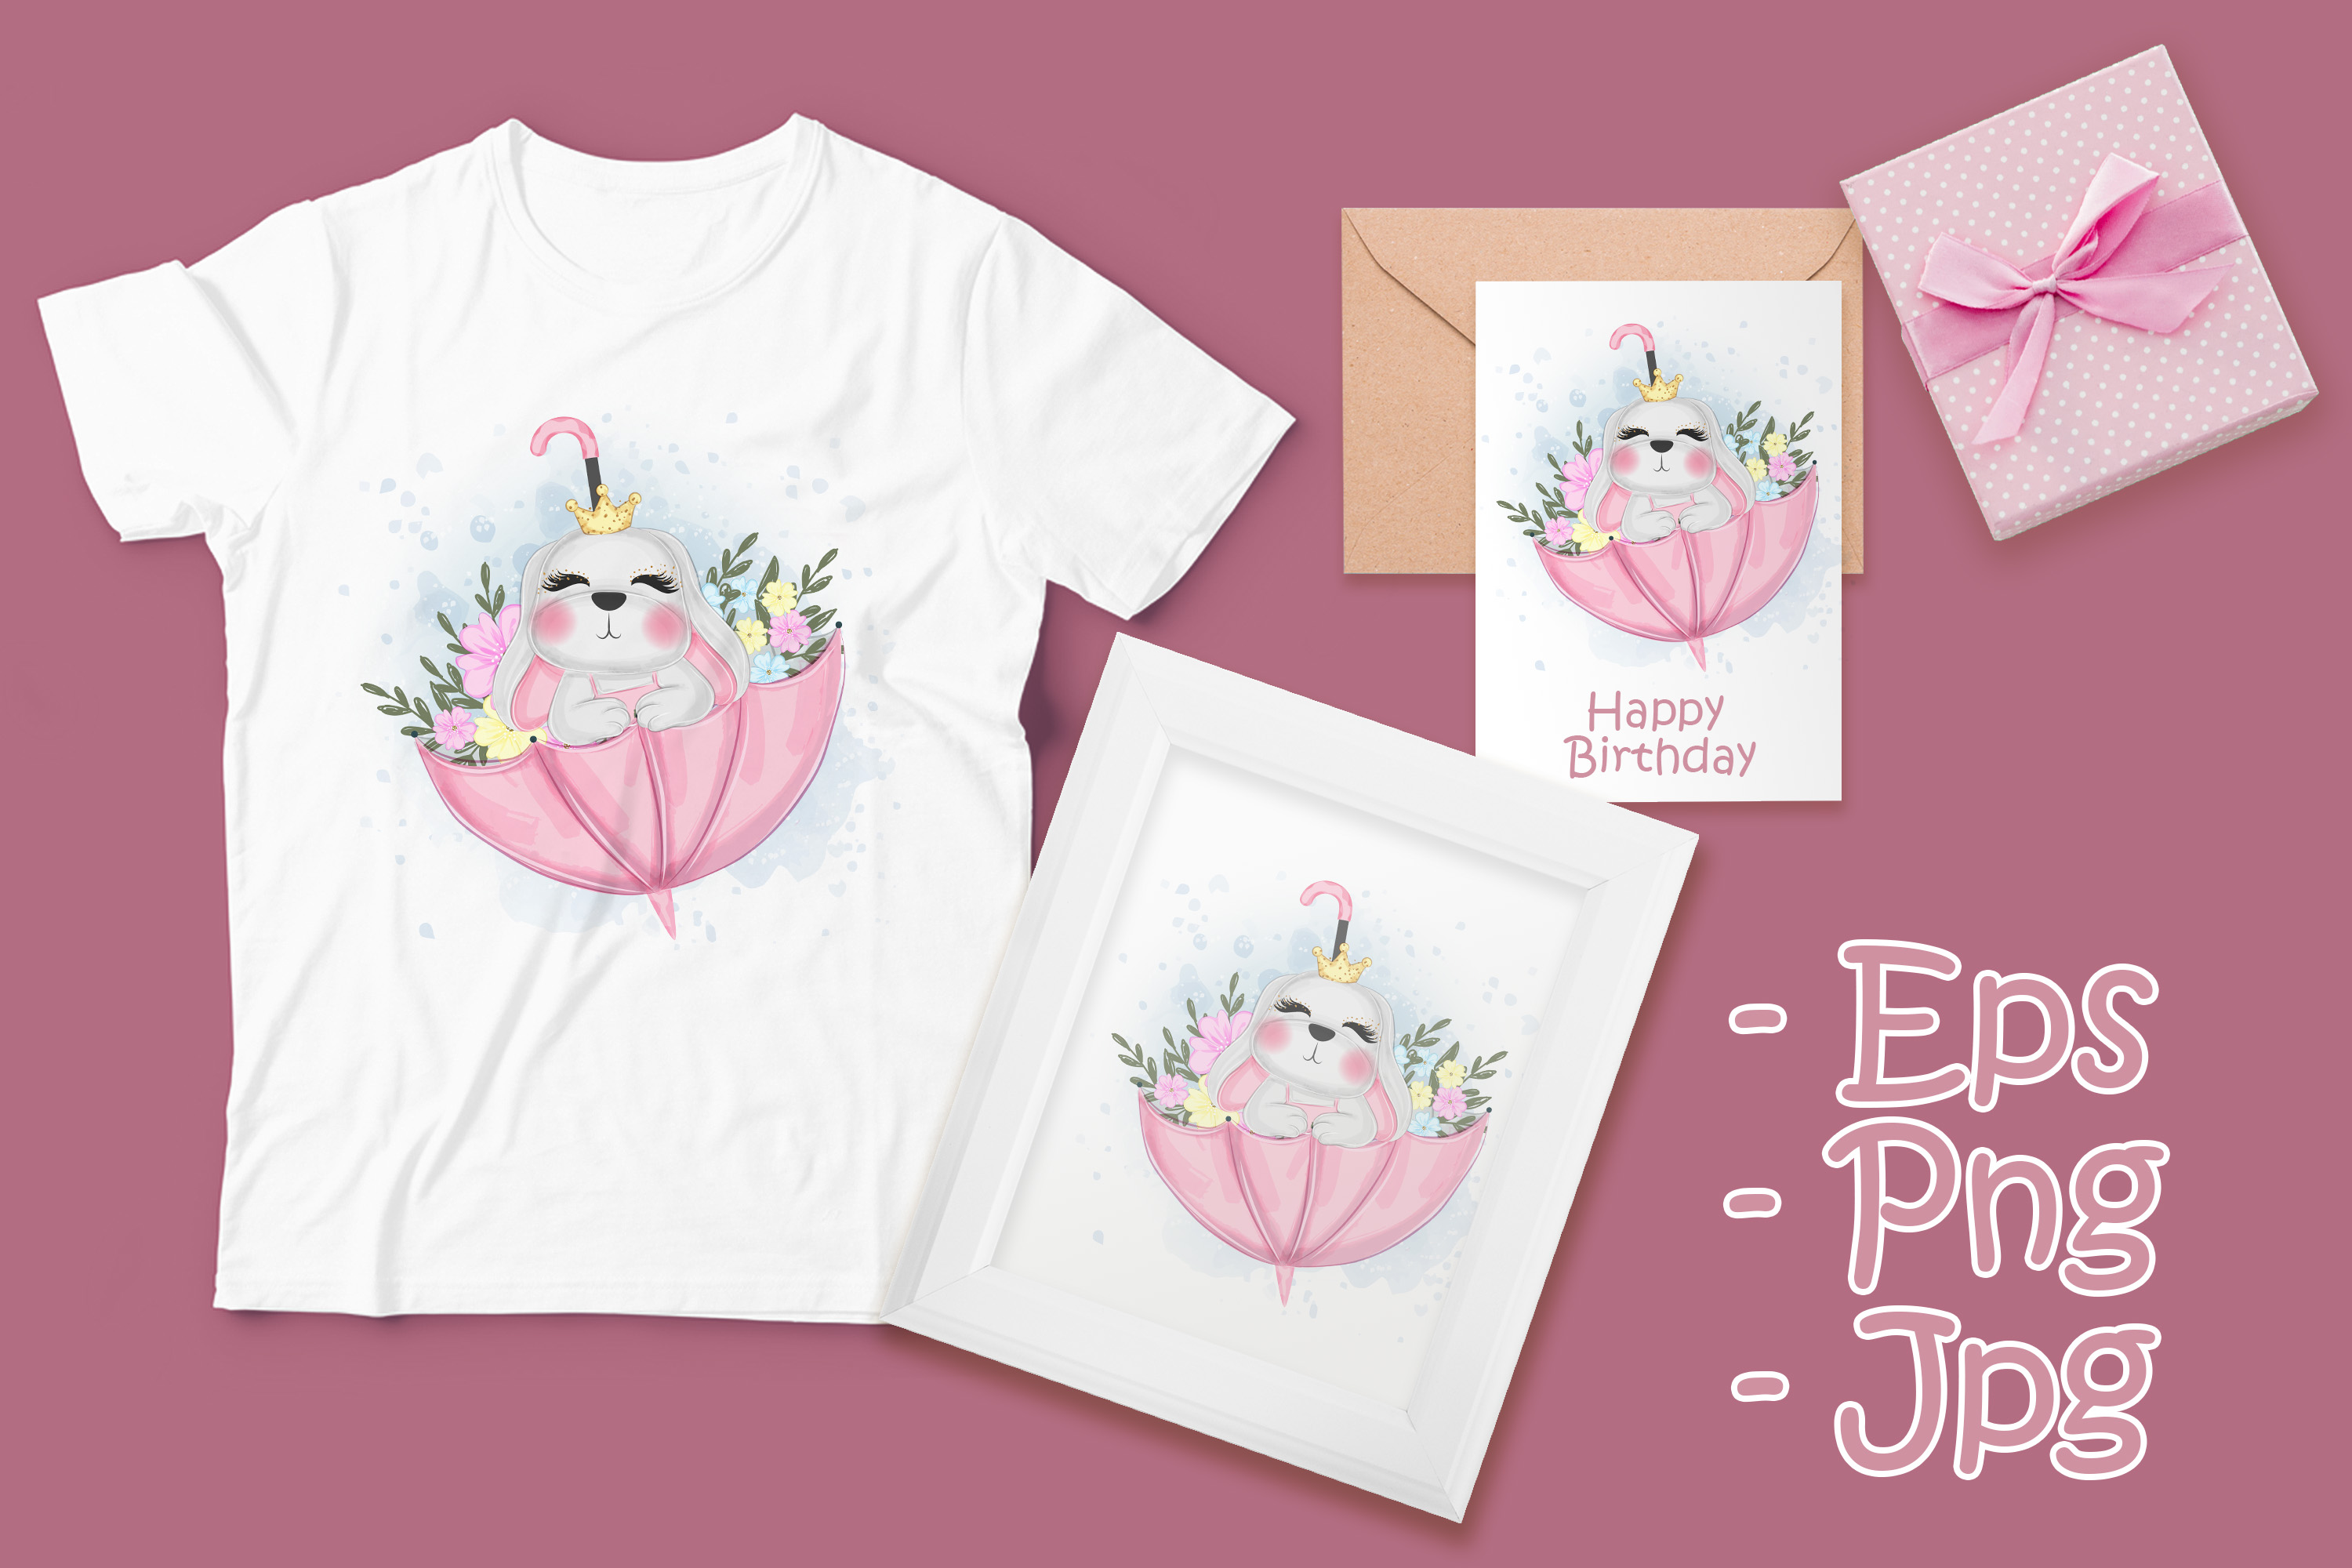 Download Free Cute Easter Bunny On Umbrella Nursery Graphic By Orchidart for Cricut Explore, Silhouette and other cutting machines.